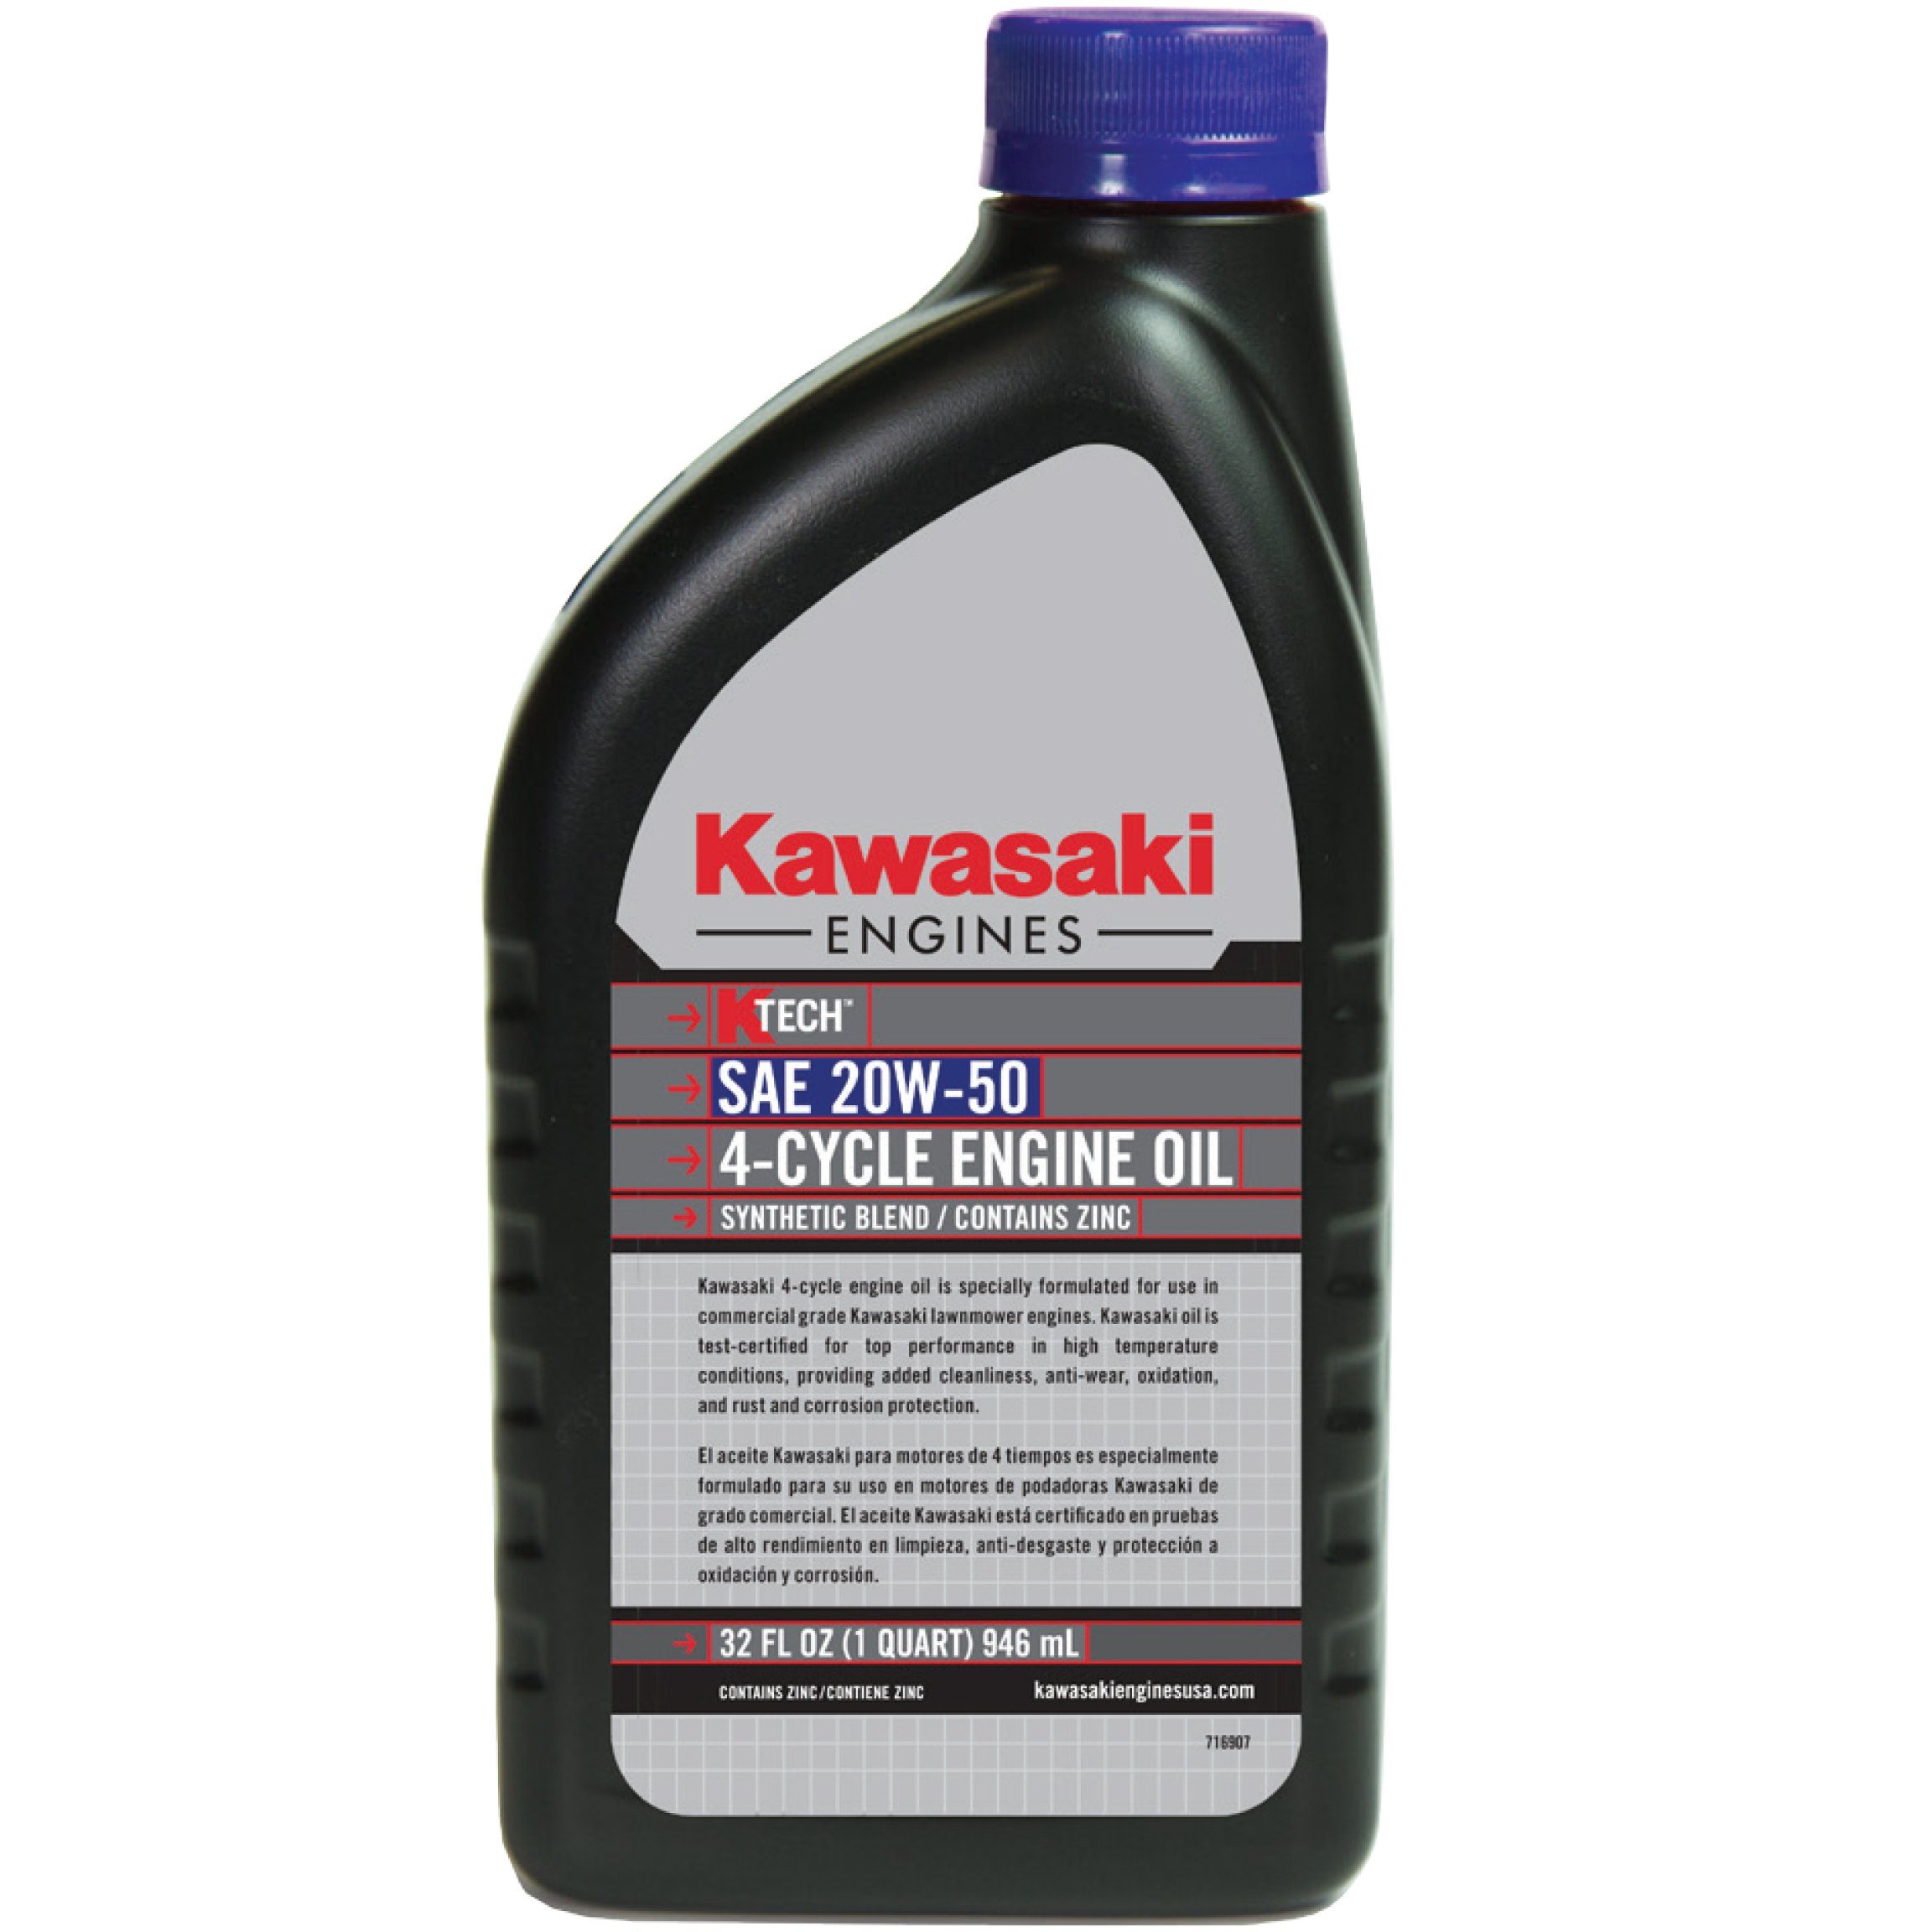 SAE 20W-50 4 Cycle Oil 1 Quart Bottle 99969-6298